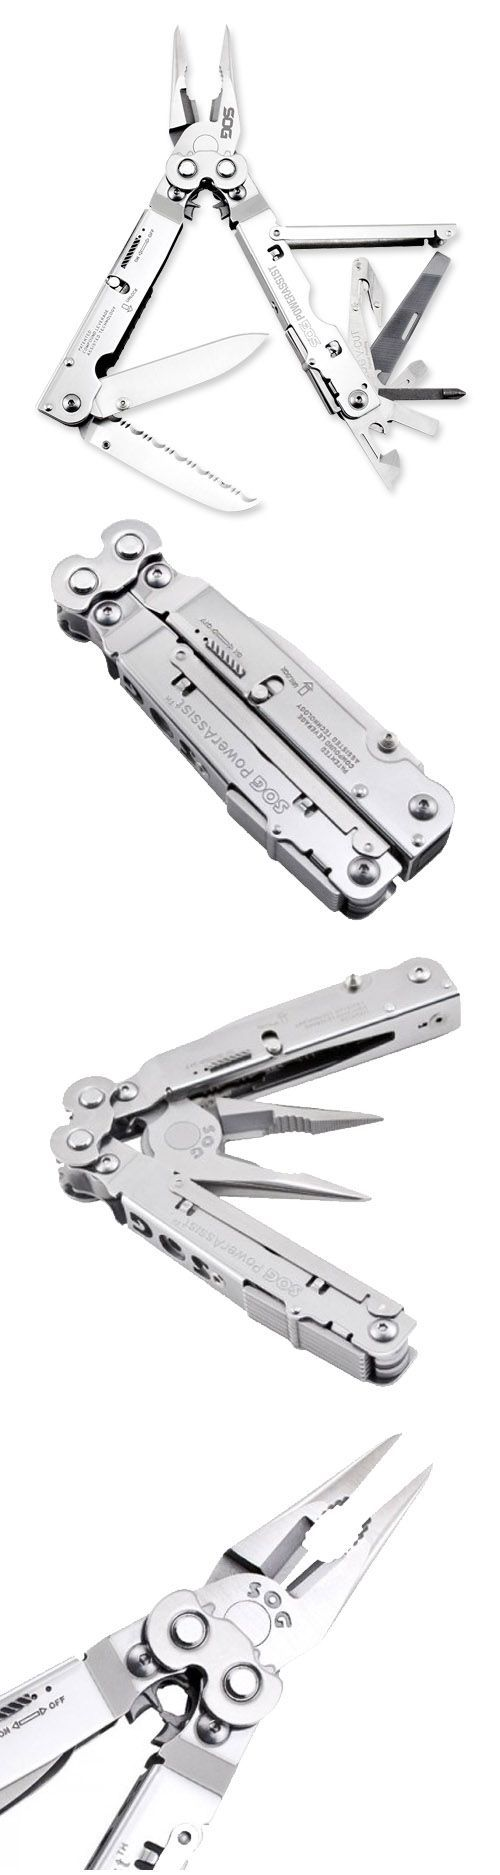 SOG PowerAssist Multi-Tool S66N-CP - 16 Tools, Satin Polsihed, Nylon Sheath, Assisted 2.75 Blade, Compound Leverage - Everyday Carry Gear